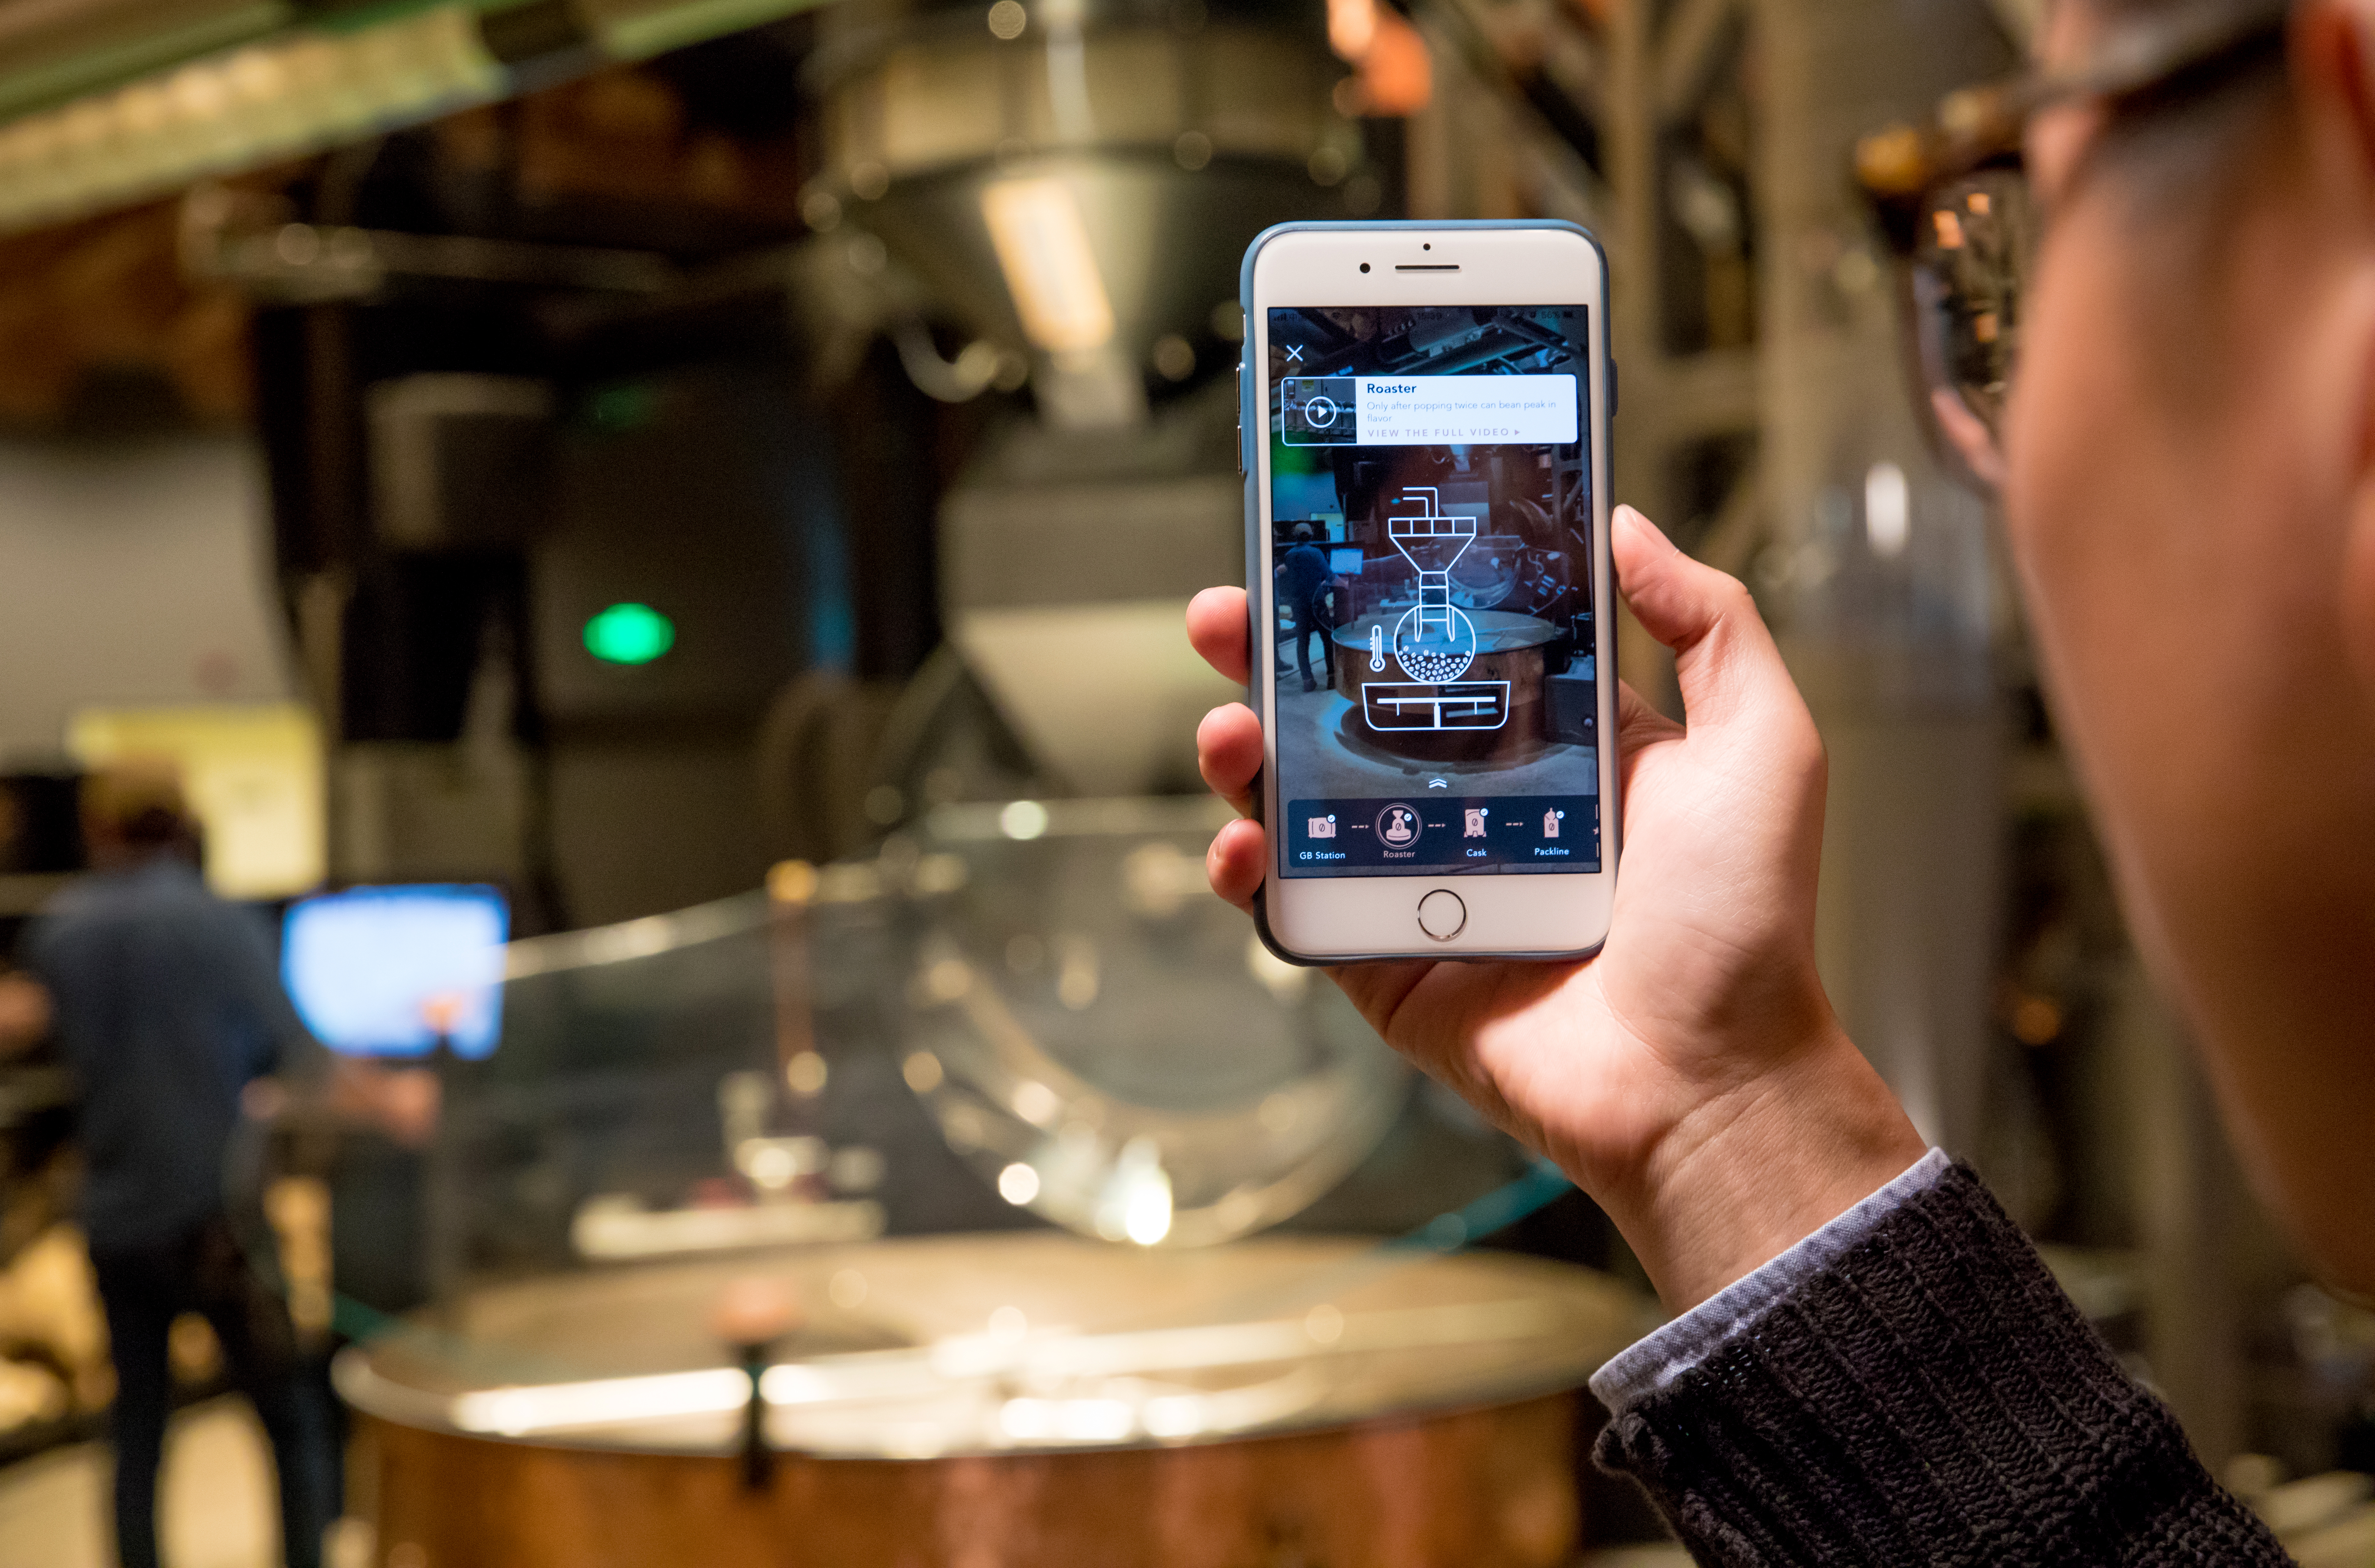 A customer uses the augmented reality feature at the Shanghai Roastery.